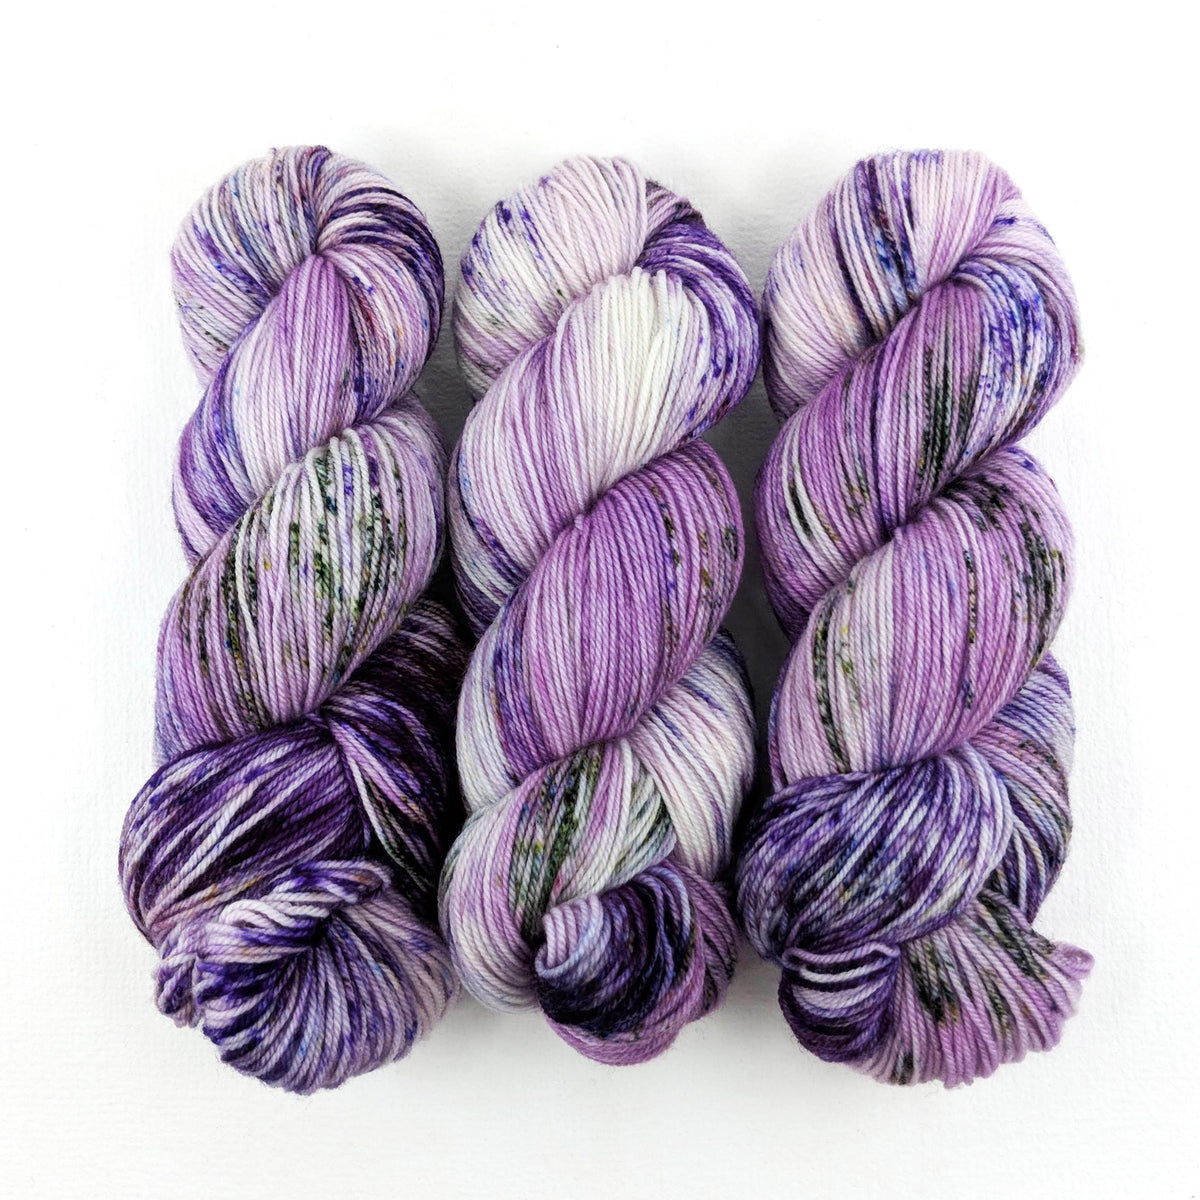 Wild Orchid in Worsted Weight